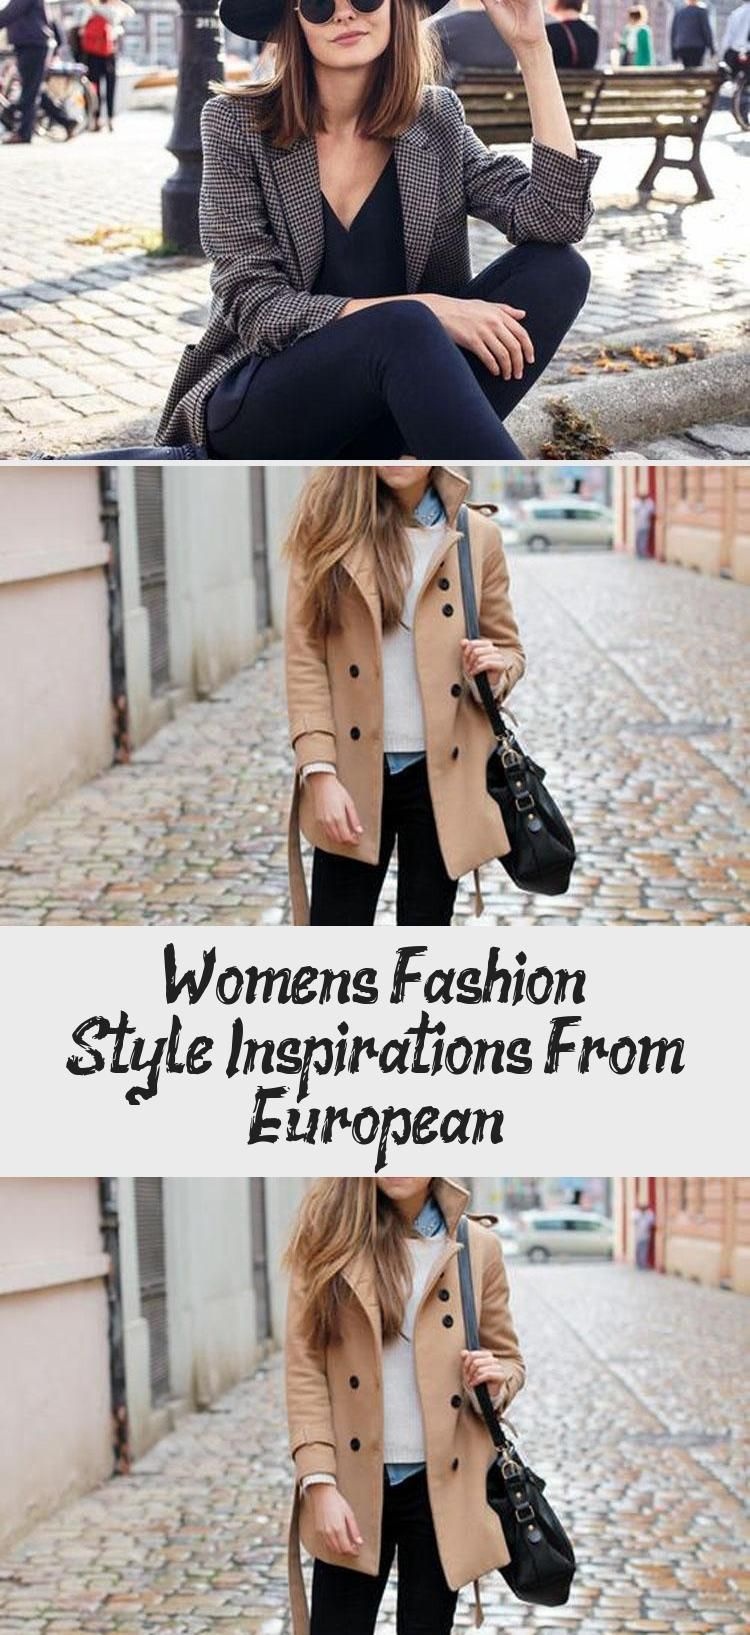 European styles for women